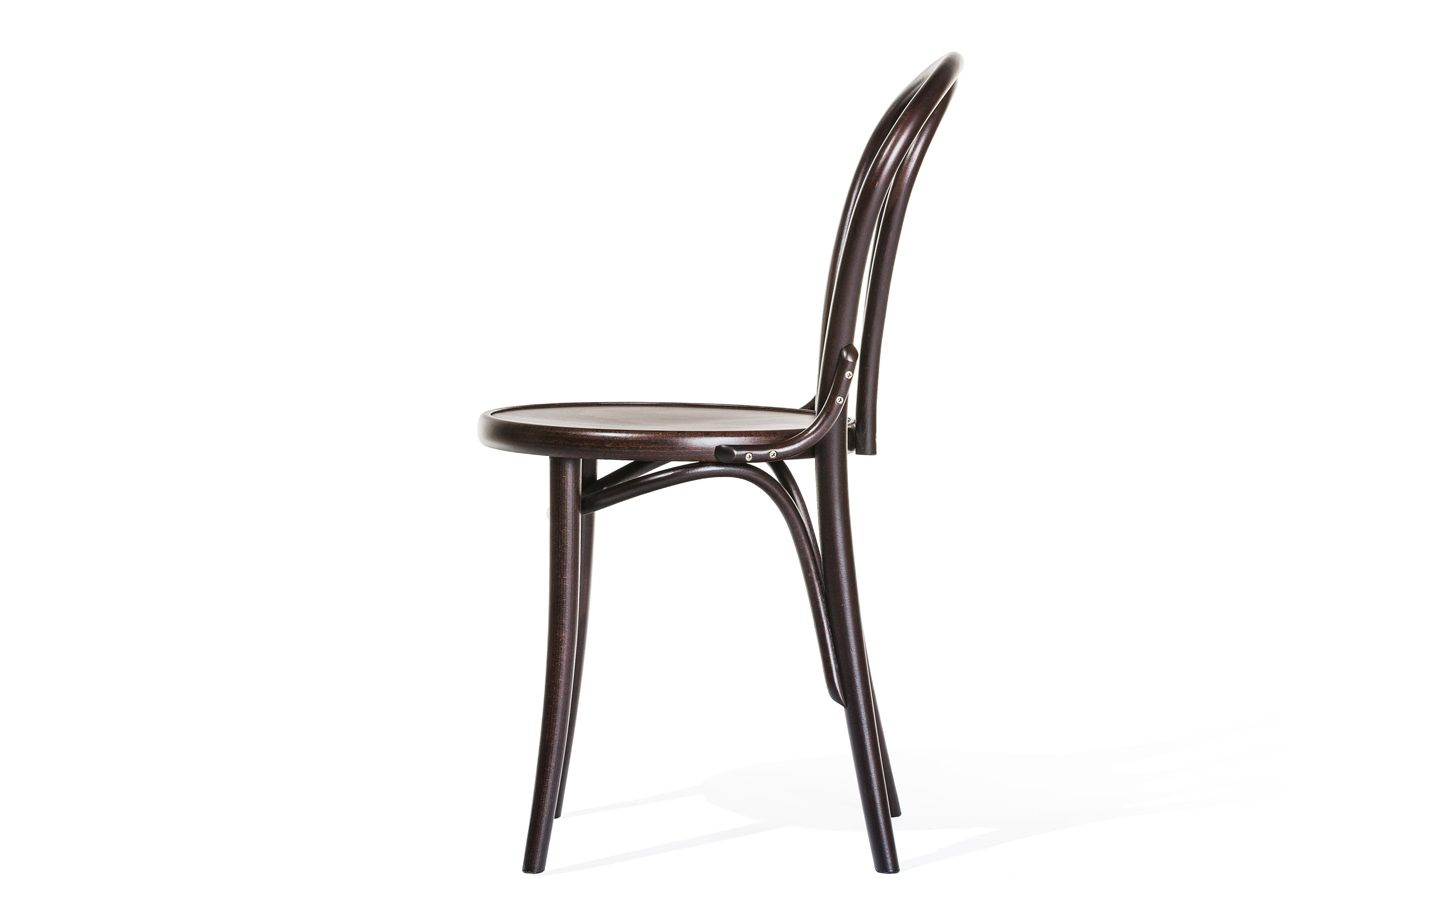 18-Dining-Chair-bent-wood-03